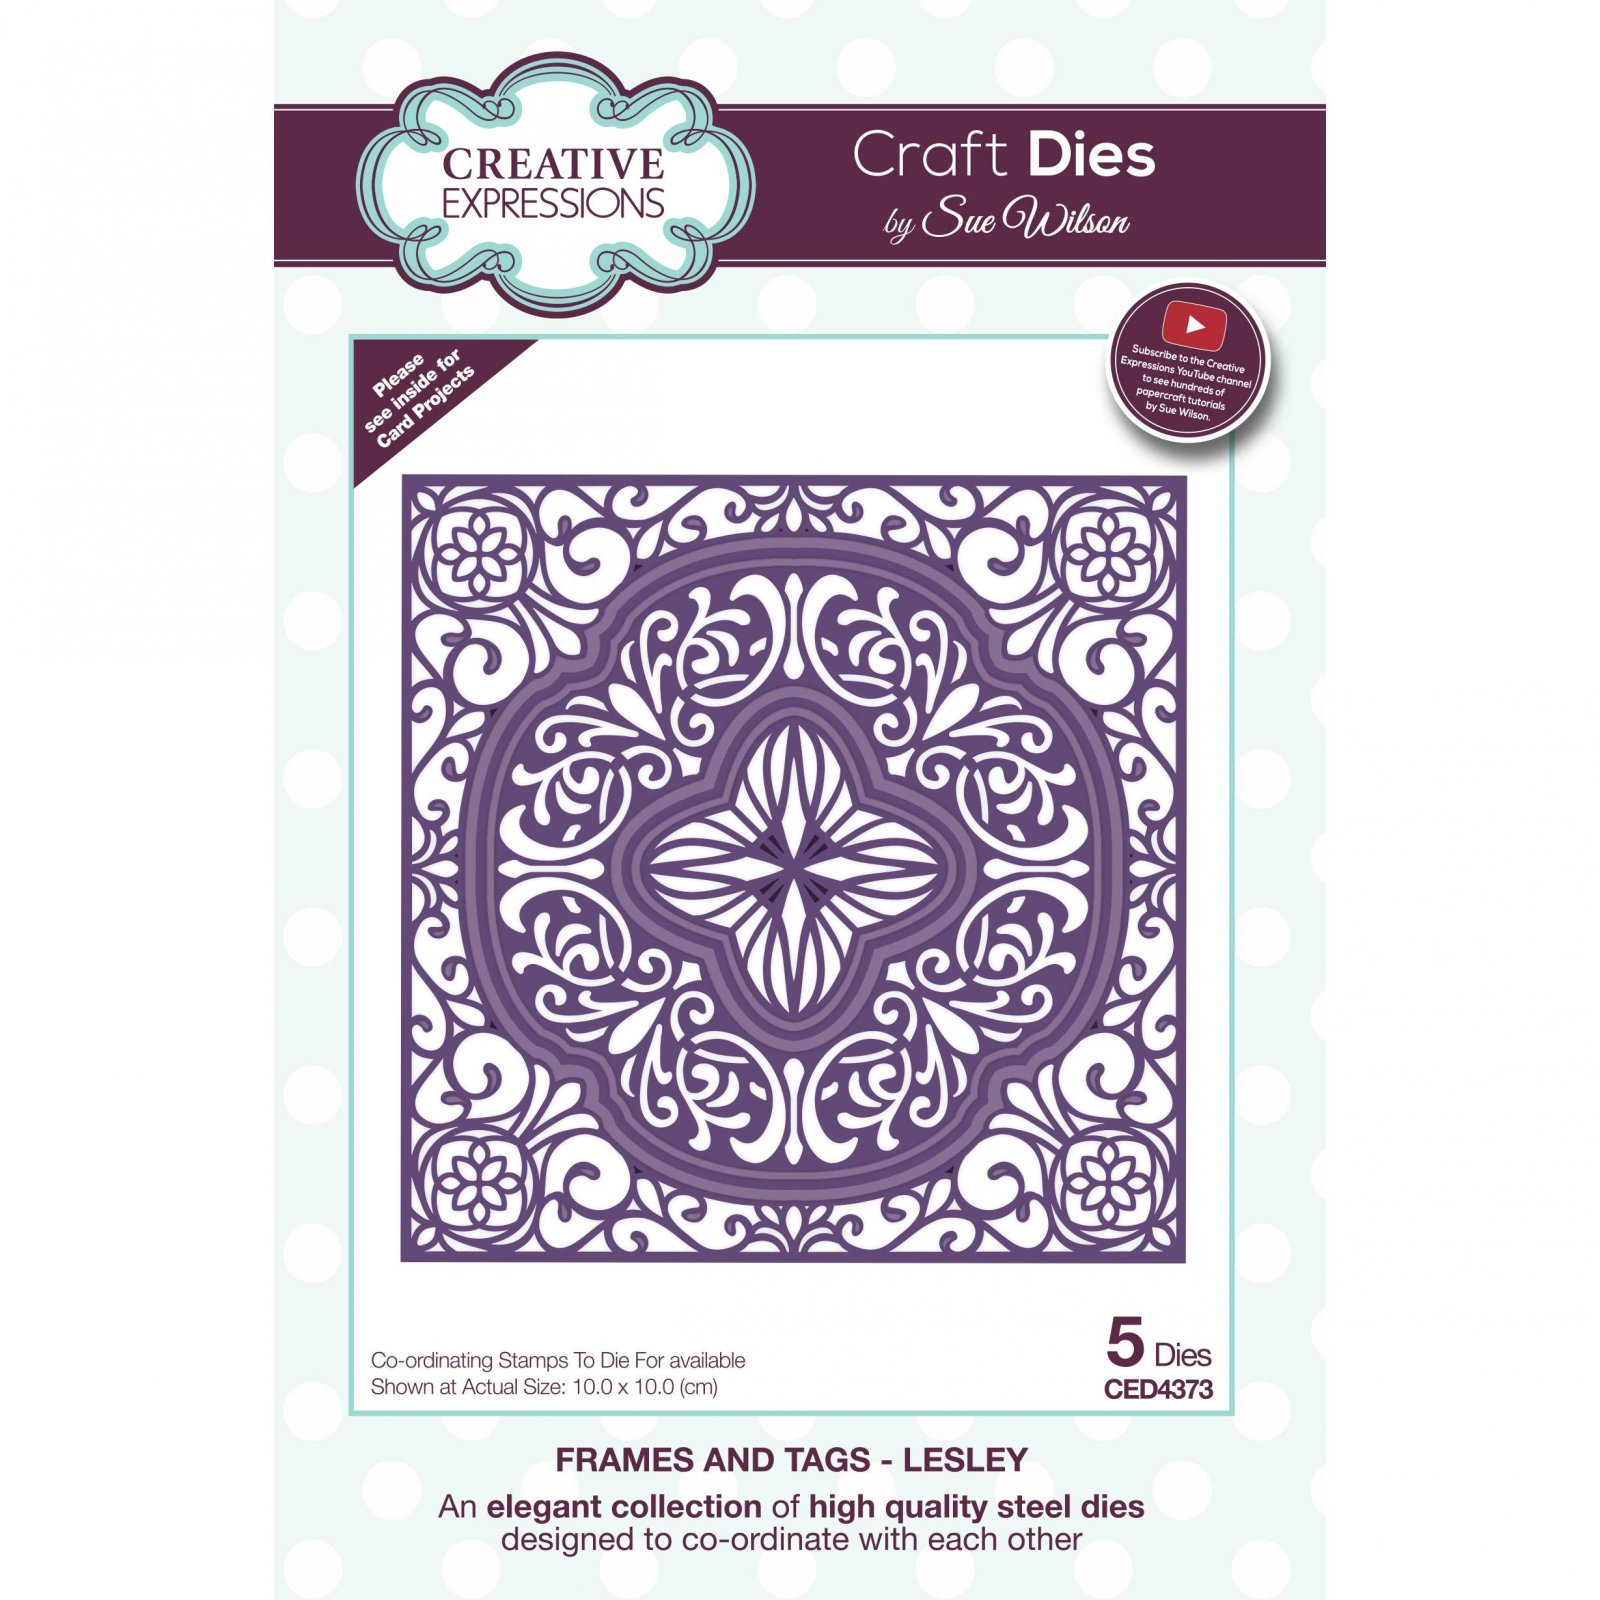 Creative Expressions Craft Dies By Sue Wilson-Frames & Tags-Lesley